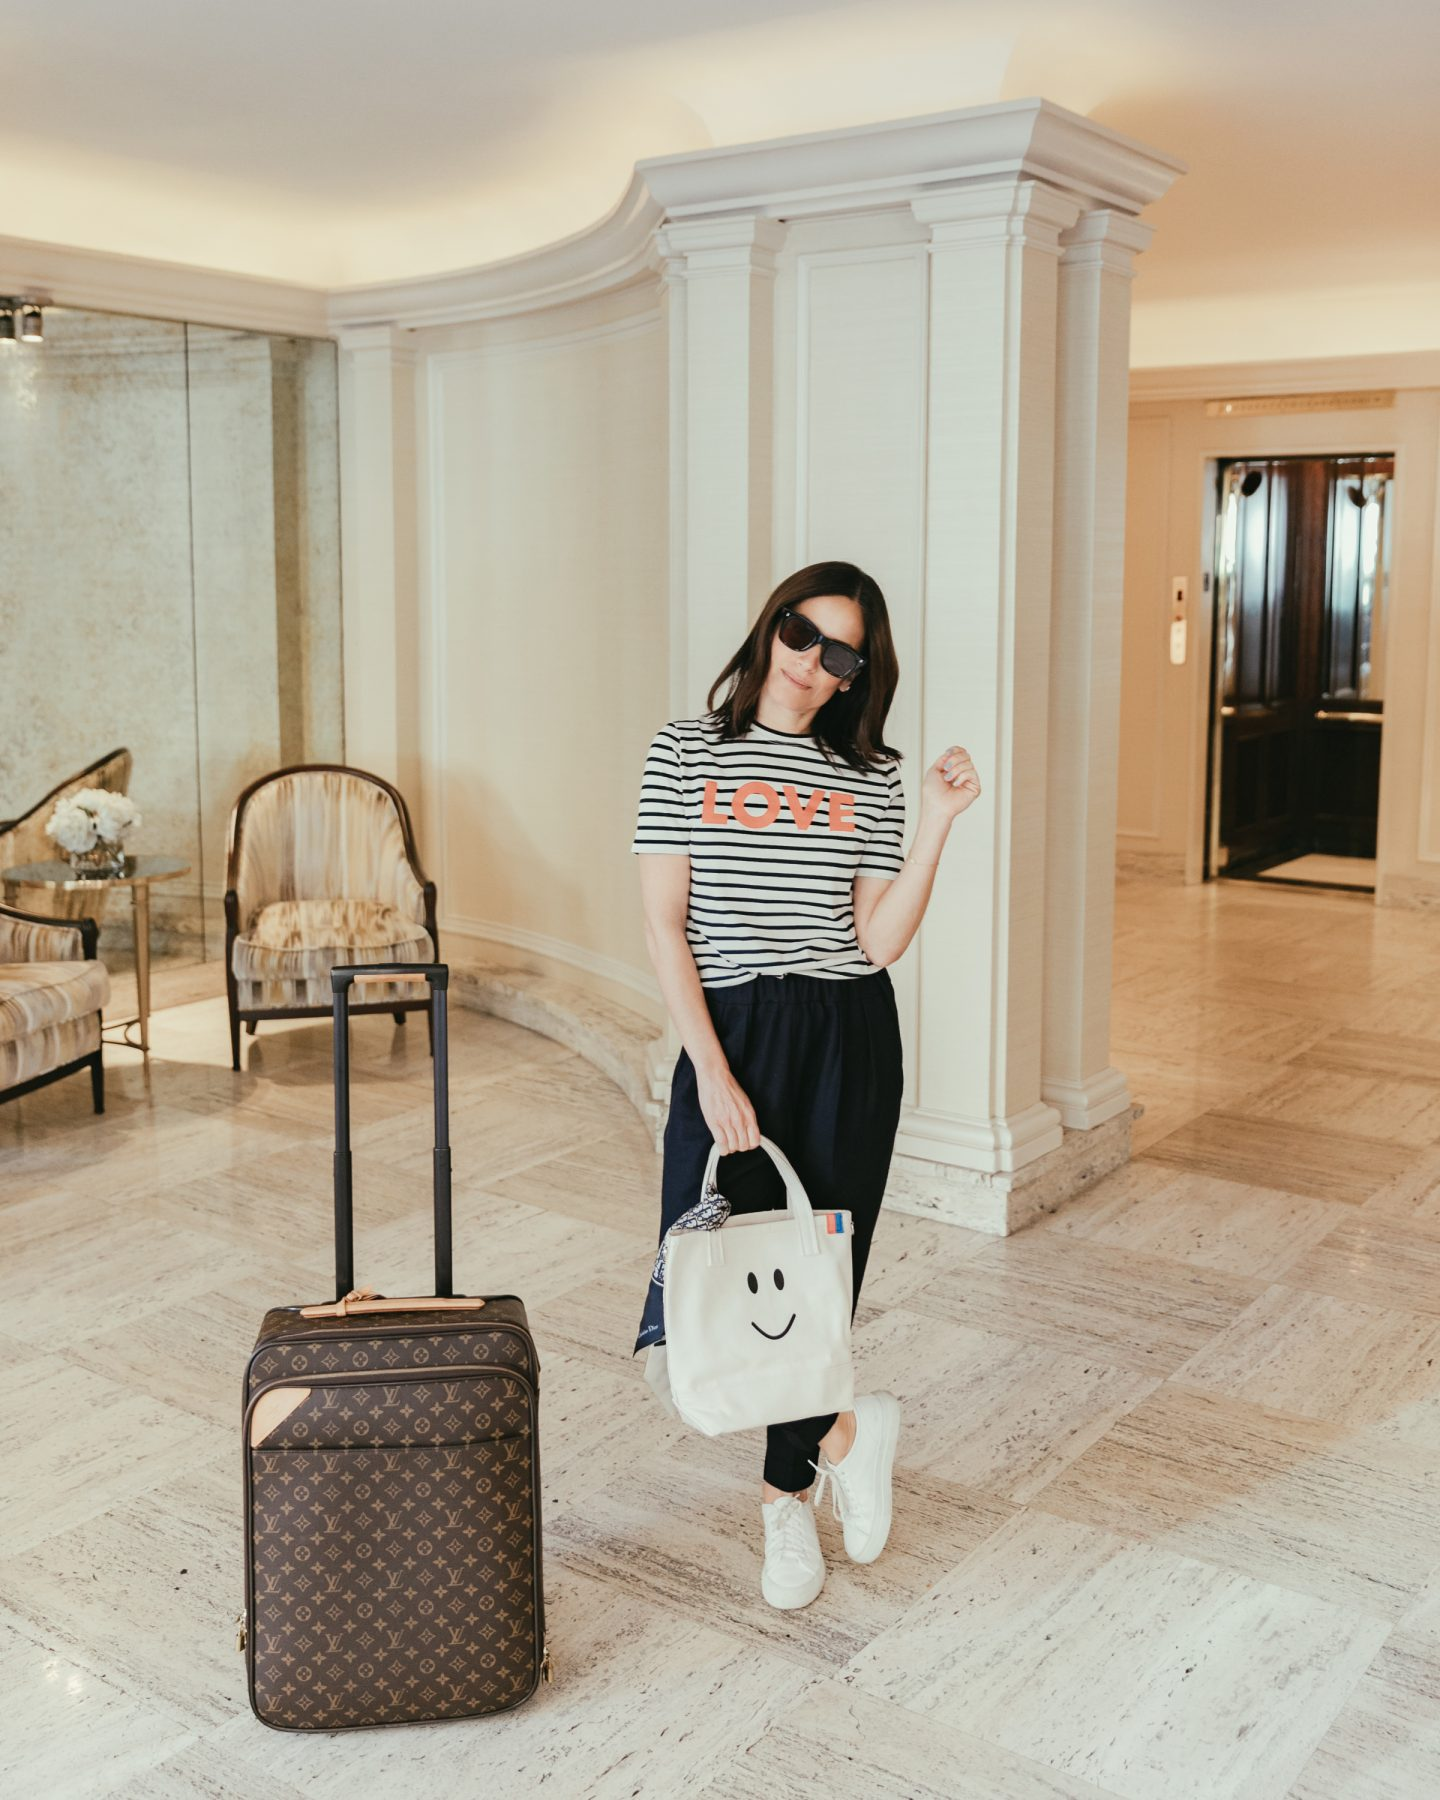 How to Keep the Vacation Glowing: 5 Post Travel Tips